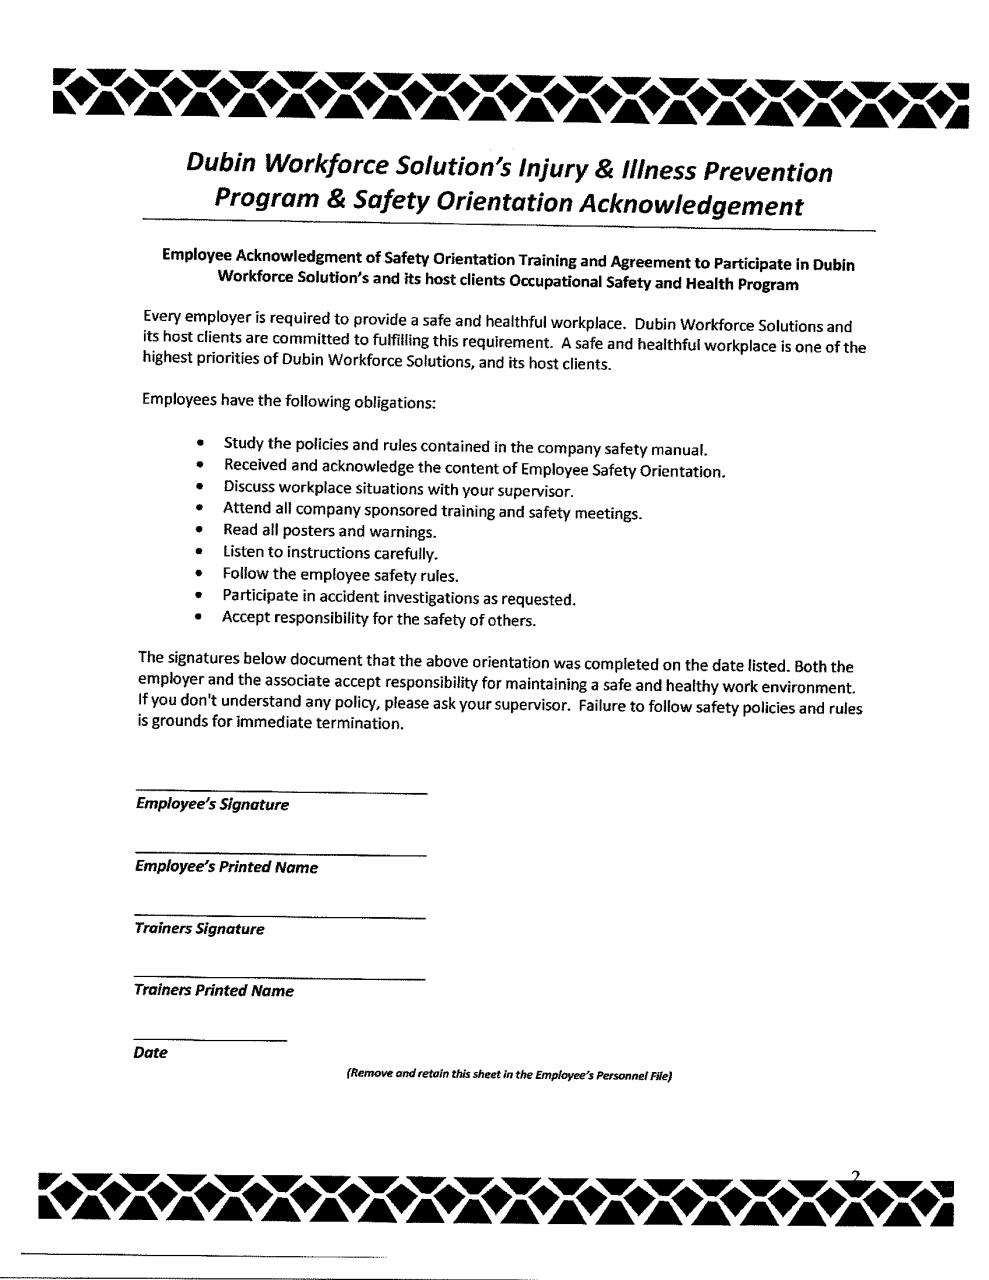 workplace safety program template - dws safety acknowledgement form pdf pdf archive